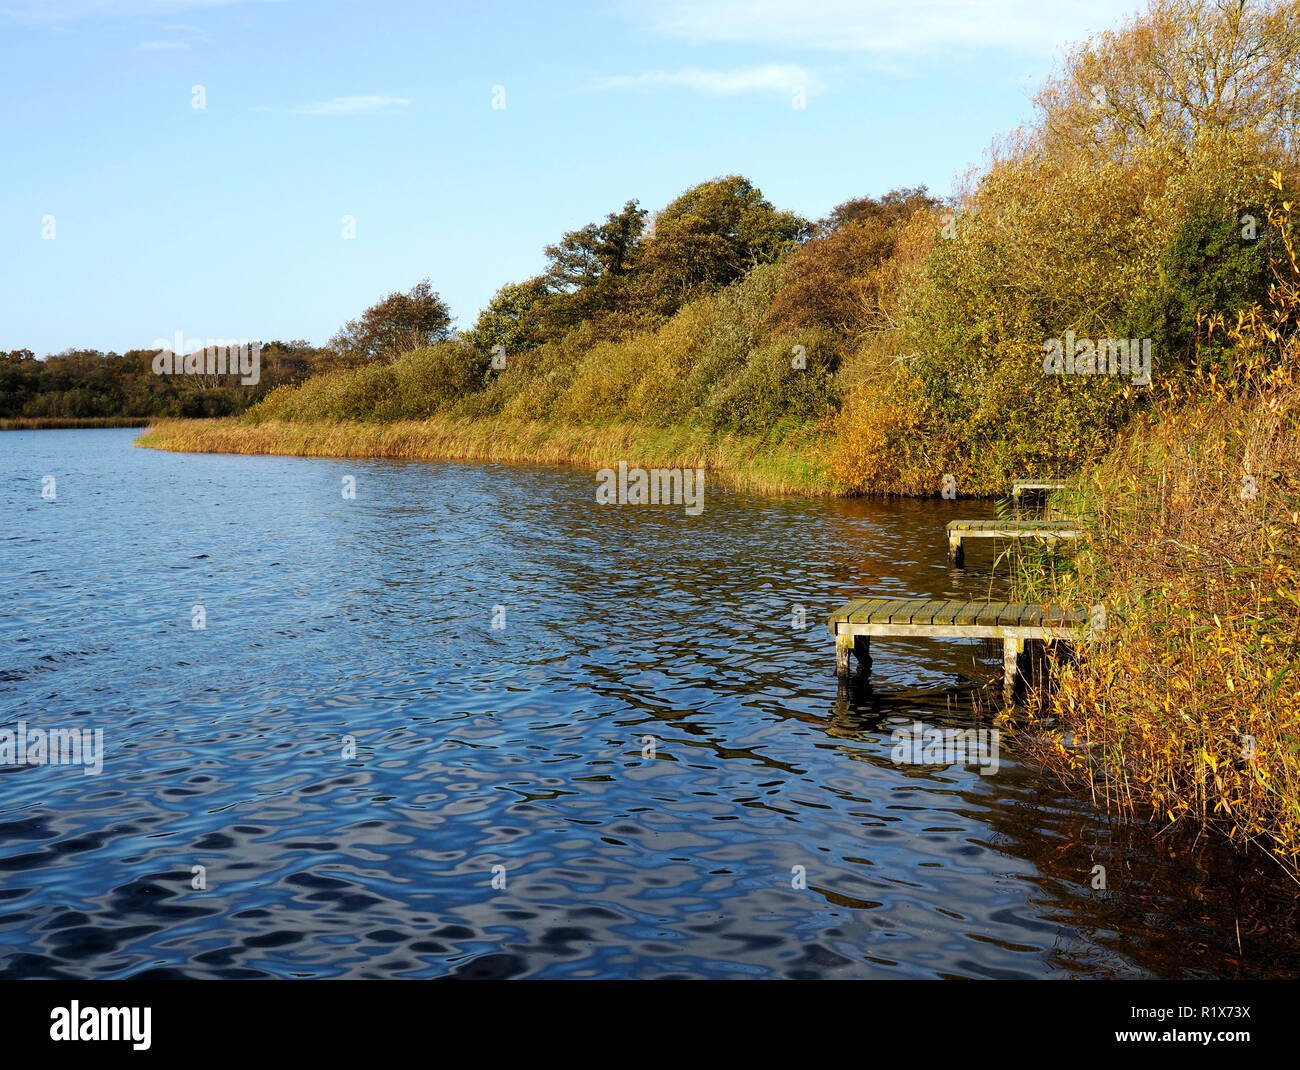 Autumn colours and fishing platforms in the reed beds of Rollesby Broad, part of the Trinity Broads nature conservation area in Norfolk. Stock Photo